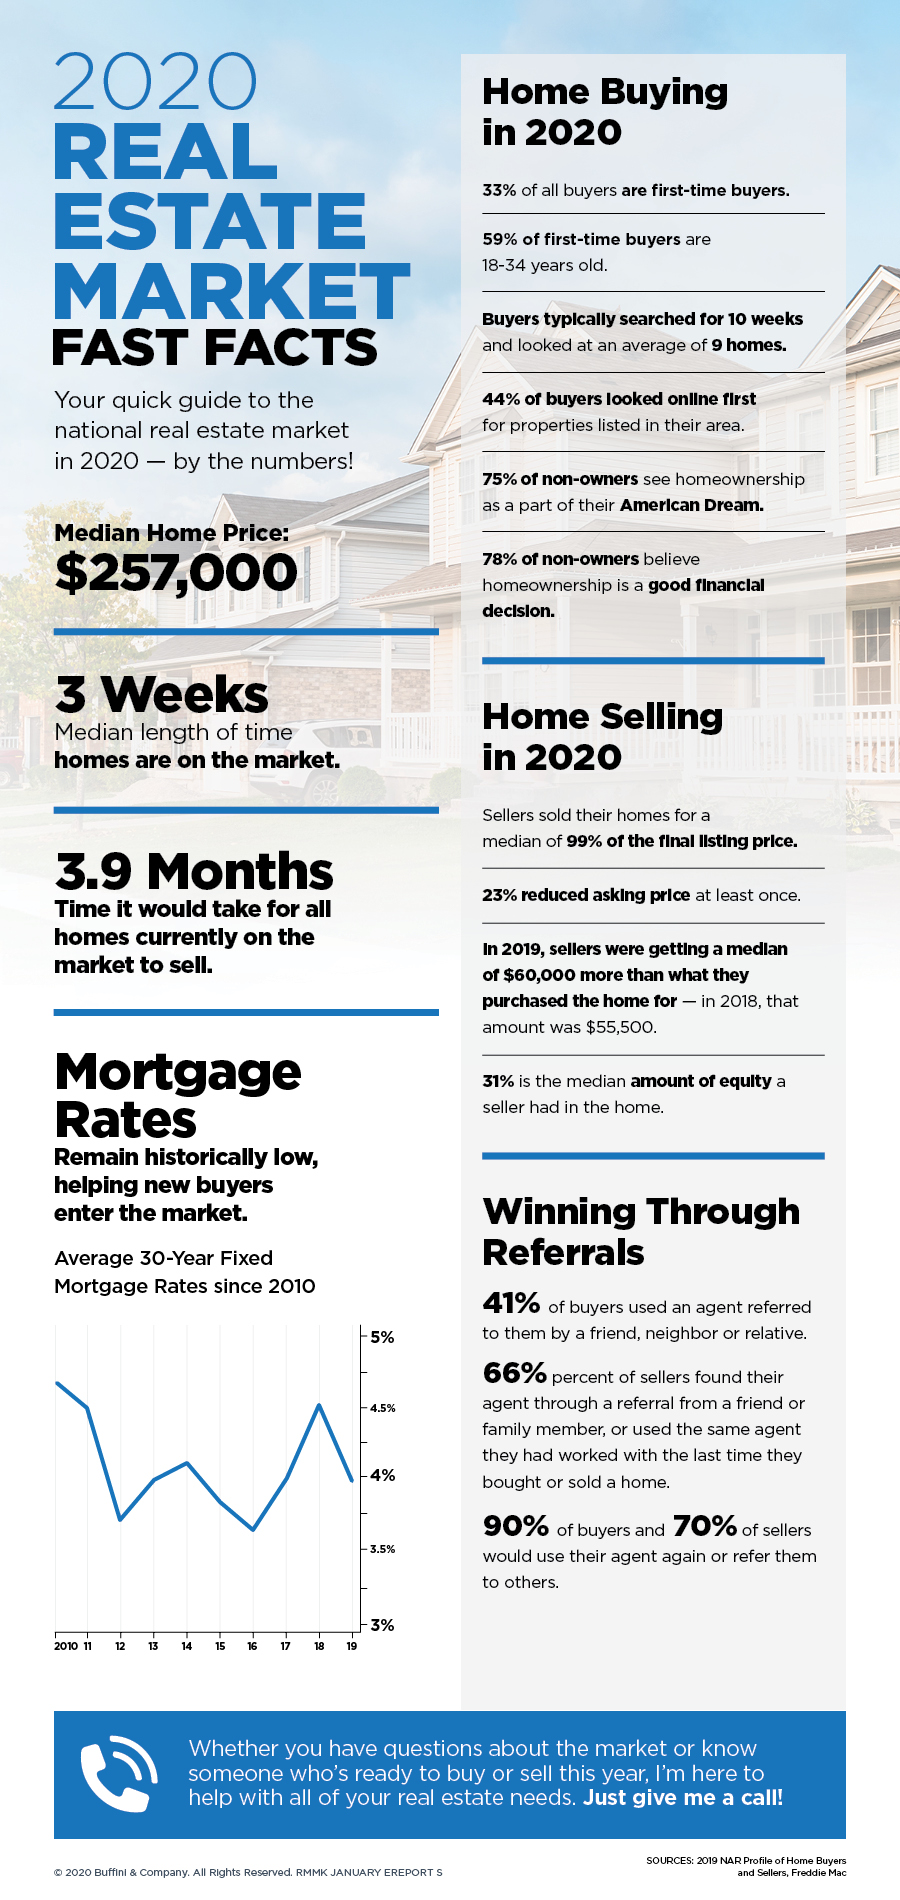 2020 Real Estate Market fast facts.